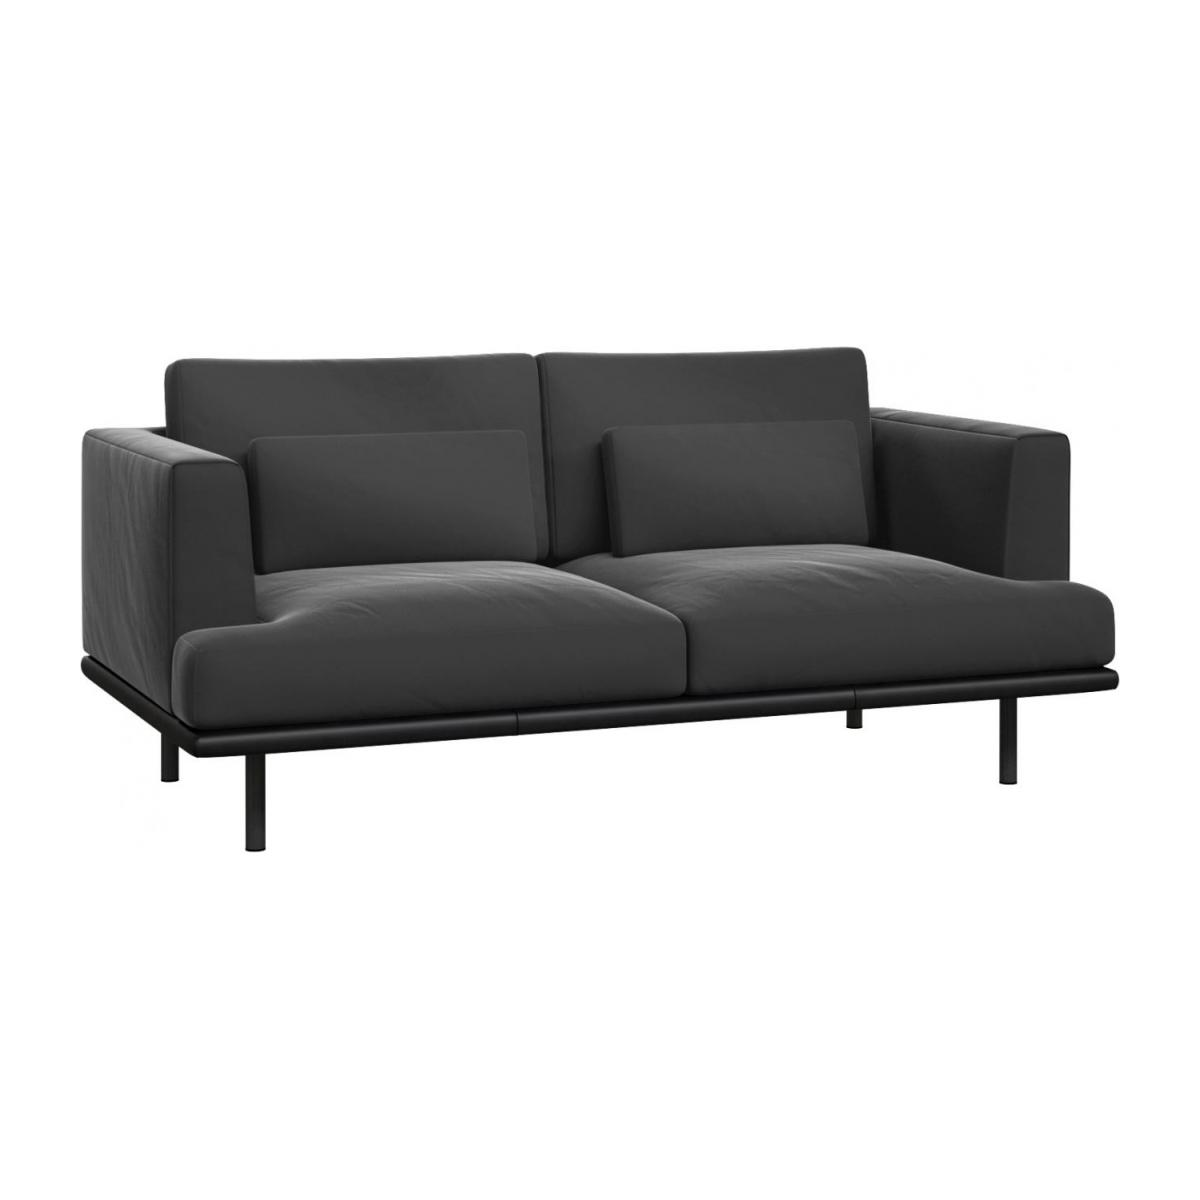 2 seater sofa in Super Velvet fabric, silver grey with base in black leather n°1